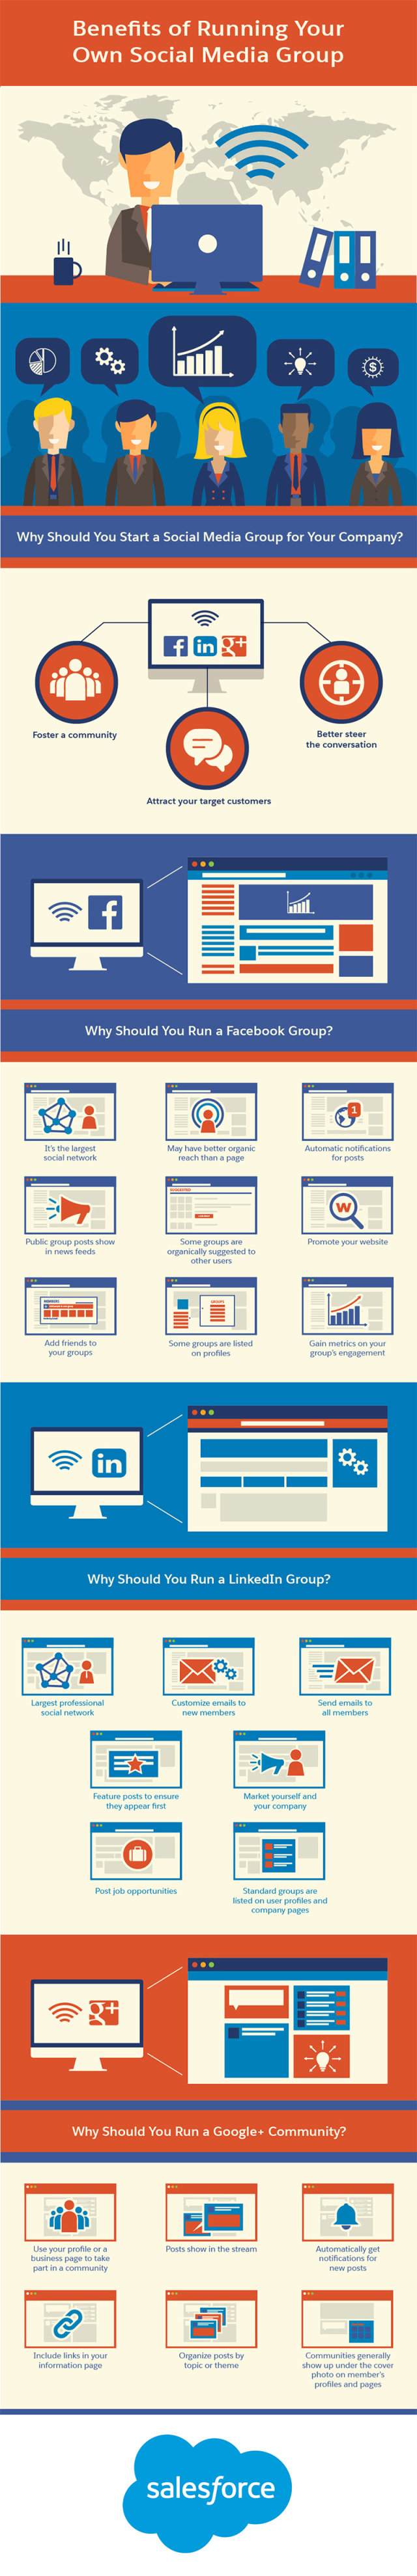 Nine reasons to setup a #Facebook group instead of pages #Infographic #SMM